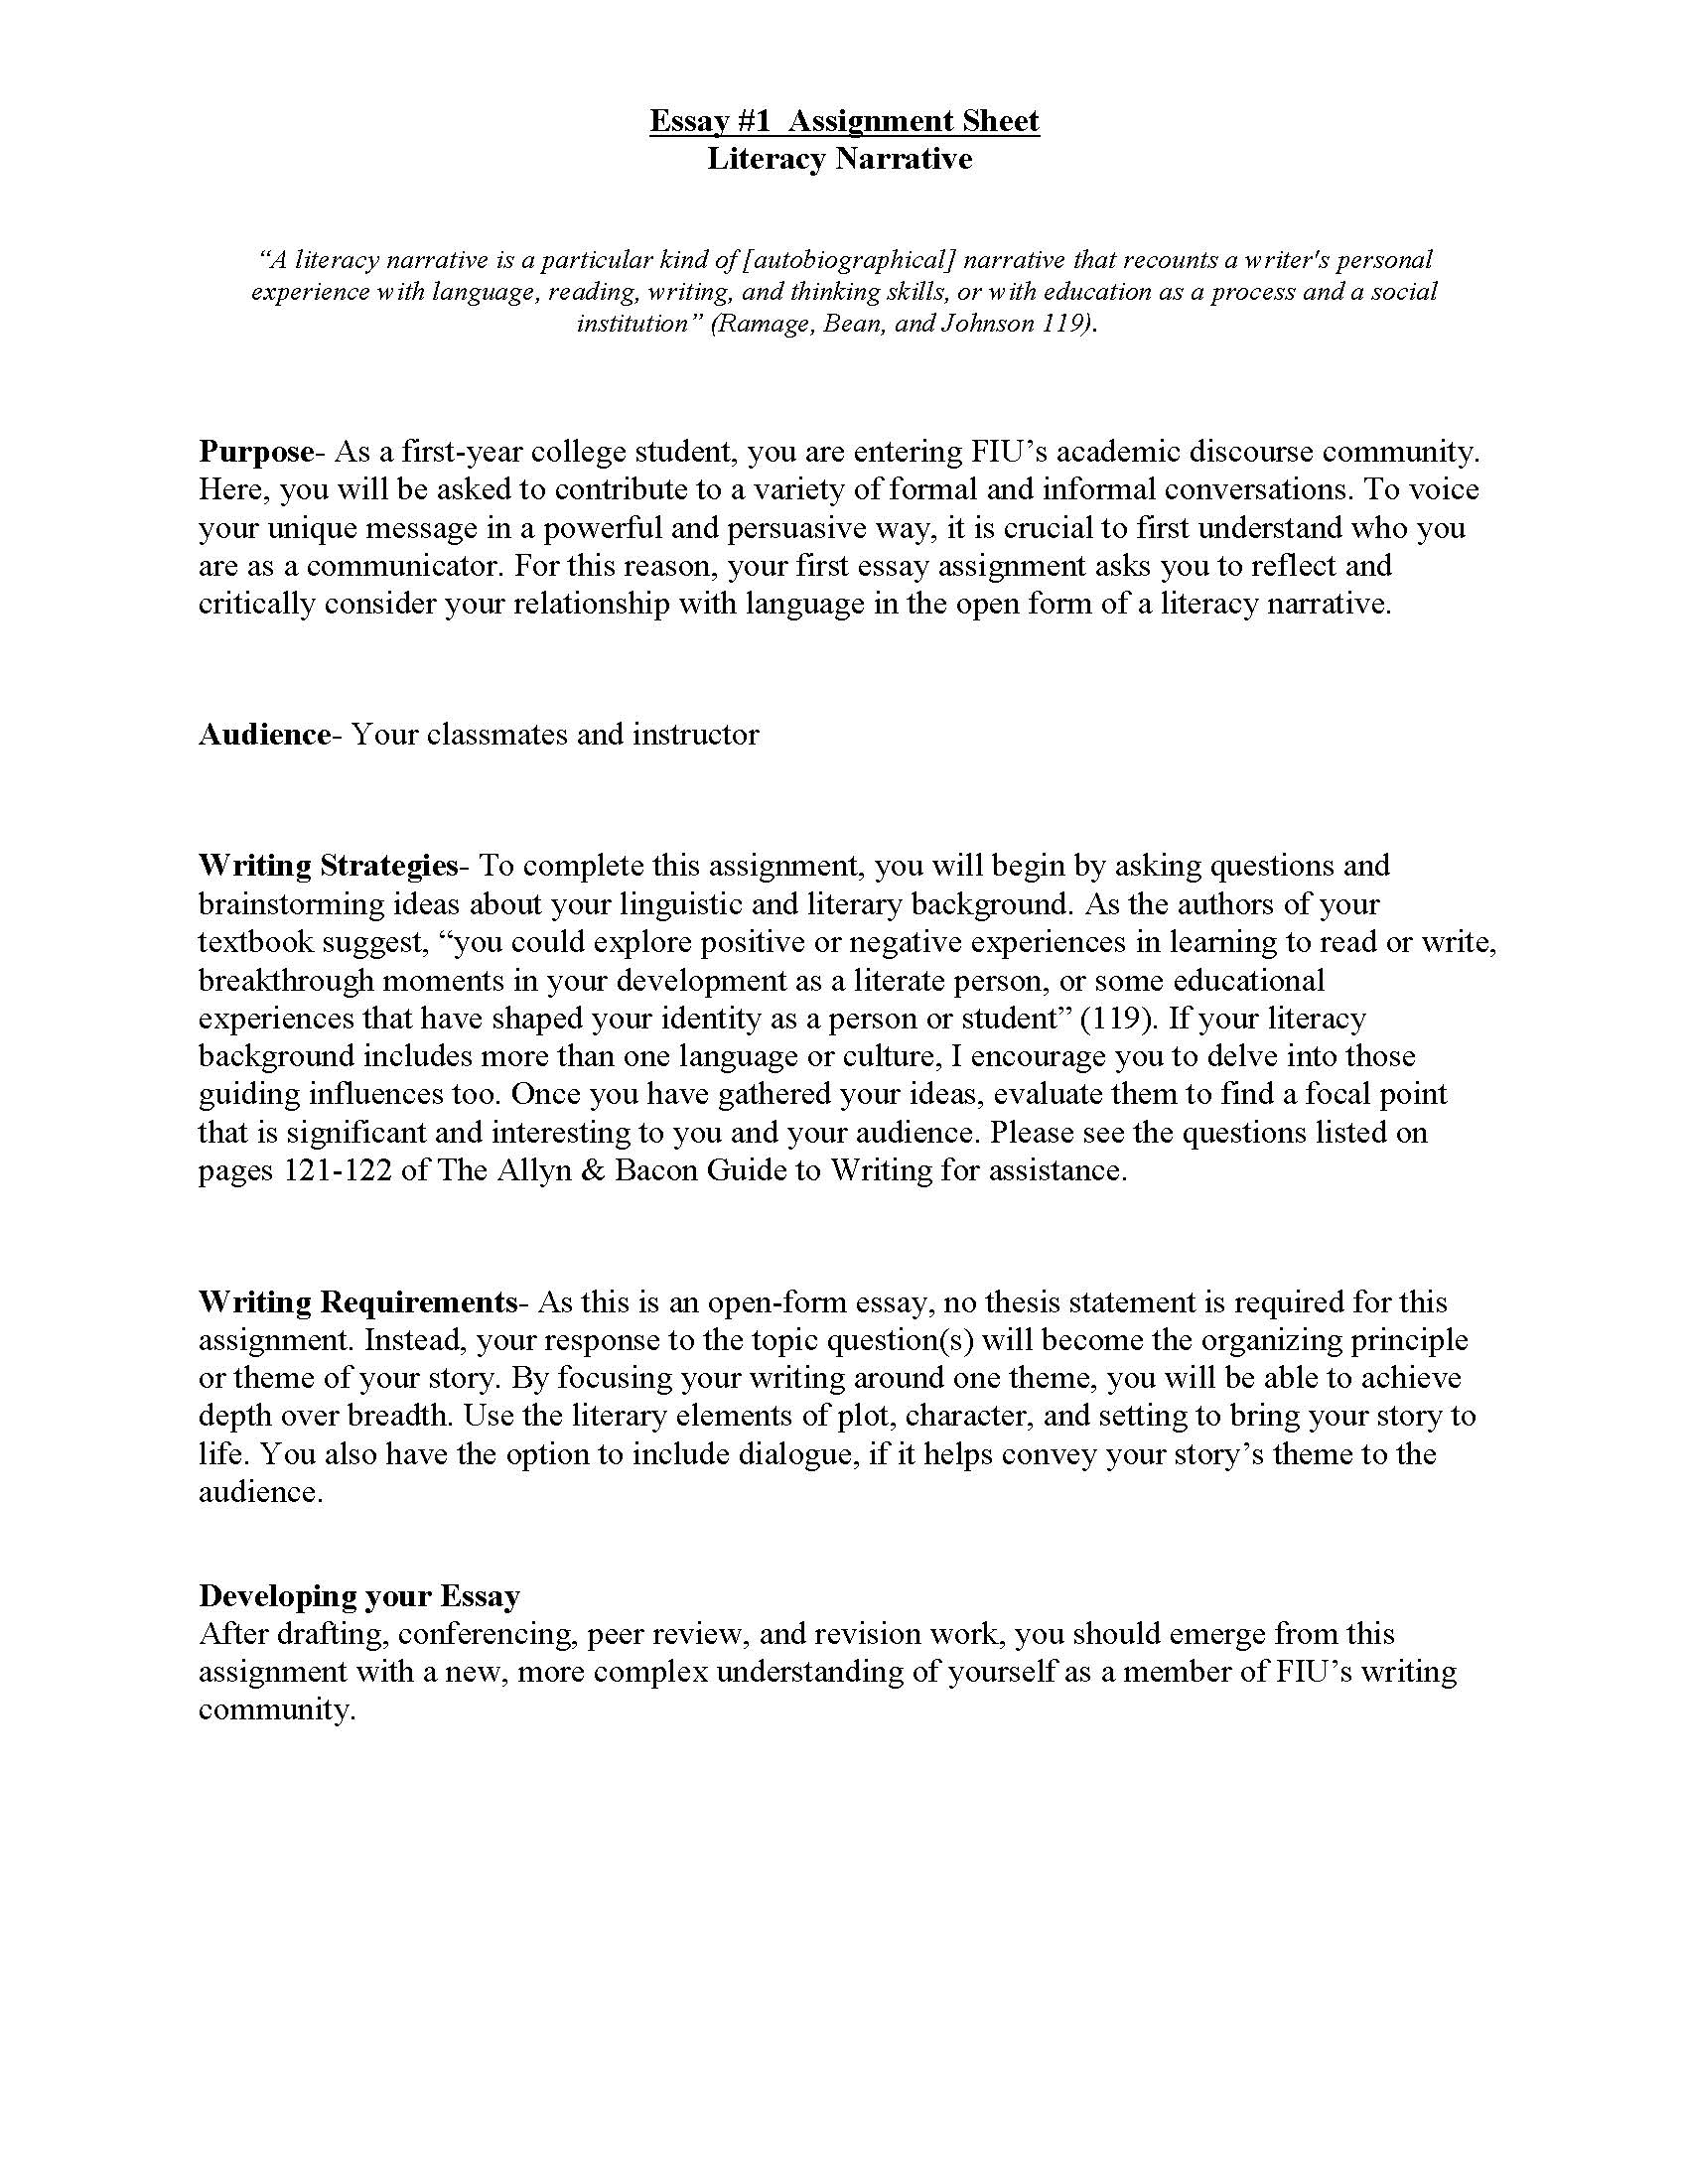 020 Essay Example Literacy Narrative Unit Assignment Spring 2012 Page 1 Fascinating Define Narrative/descriptive Definition Of Writing The Term Full